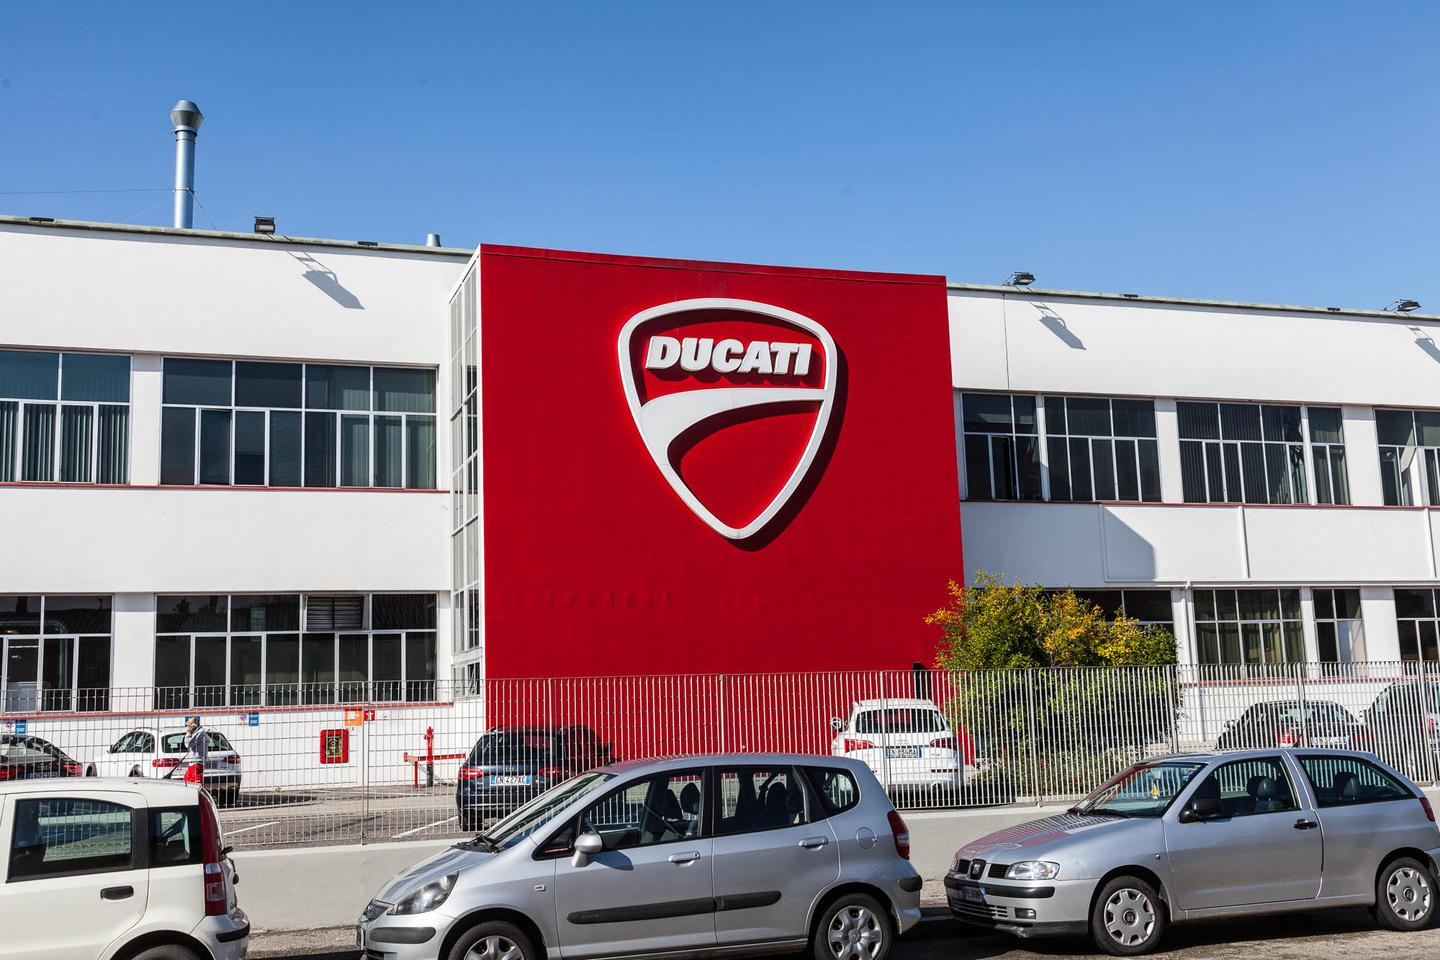 The Ducati Factory, in the Borgo Panigale district some 8km from the centre of Bologna, Italy.